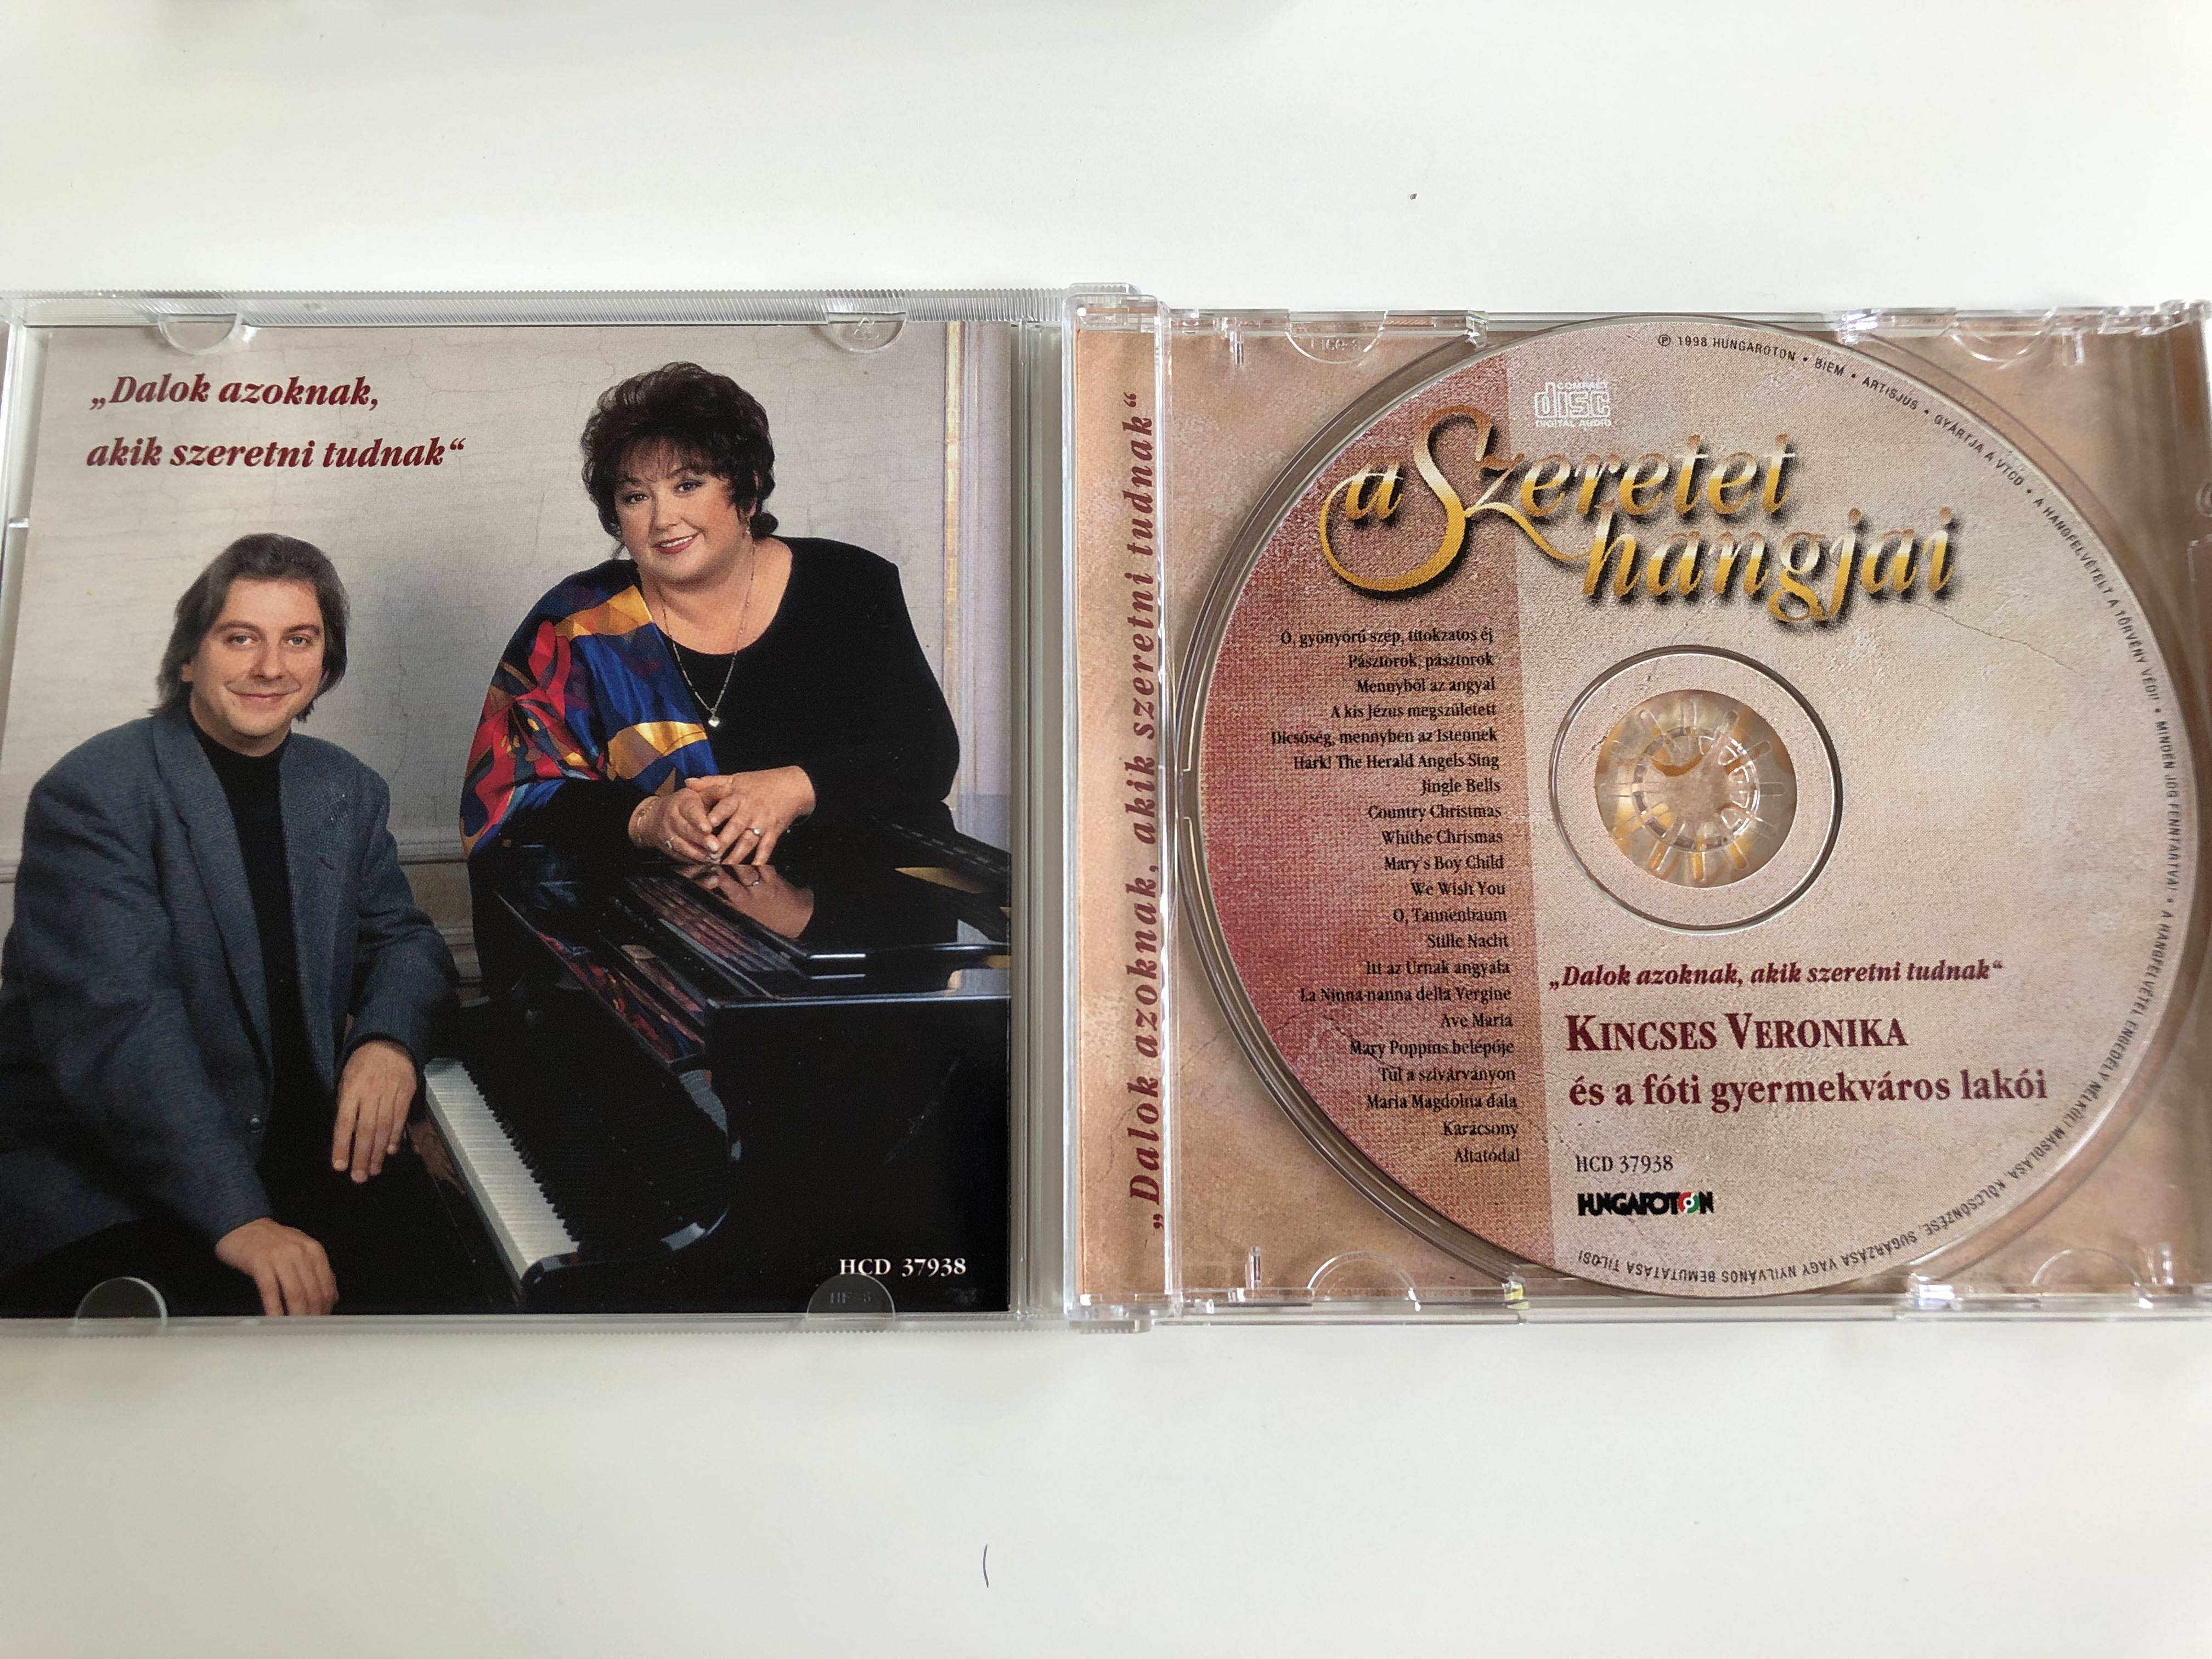 kincses-veronika-s-a-f-ti-gyermekv-ros-lak-i-a-szeretet-hangjai-hungaroton-hcd37938-hungarian-christmas-songs-and-other-popular-songs-4-.jpg